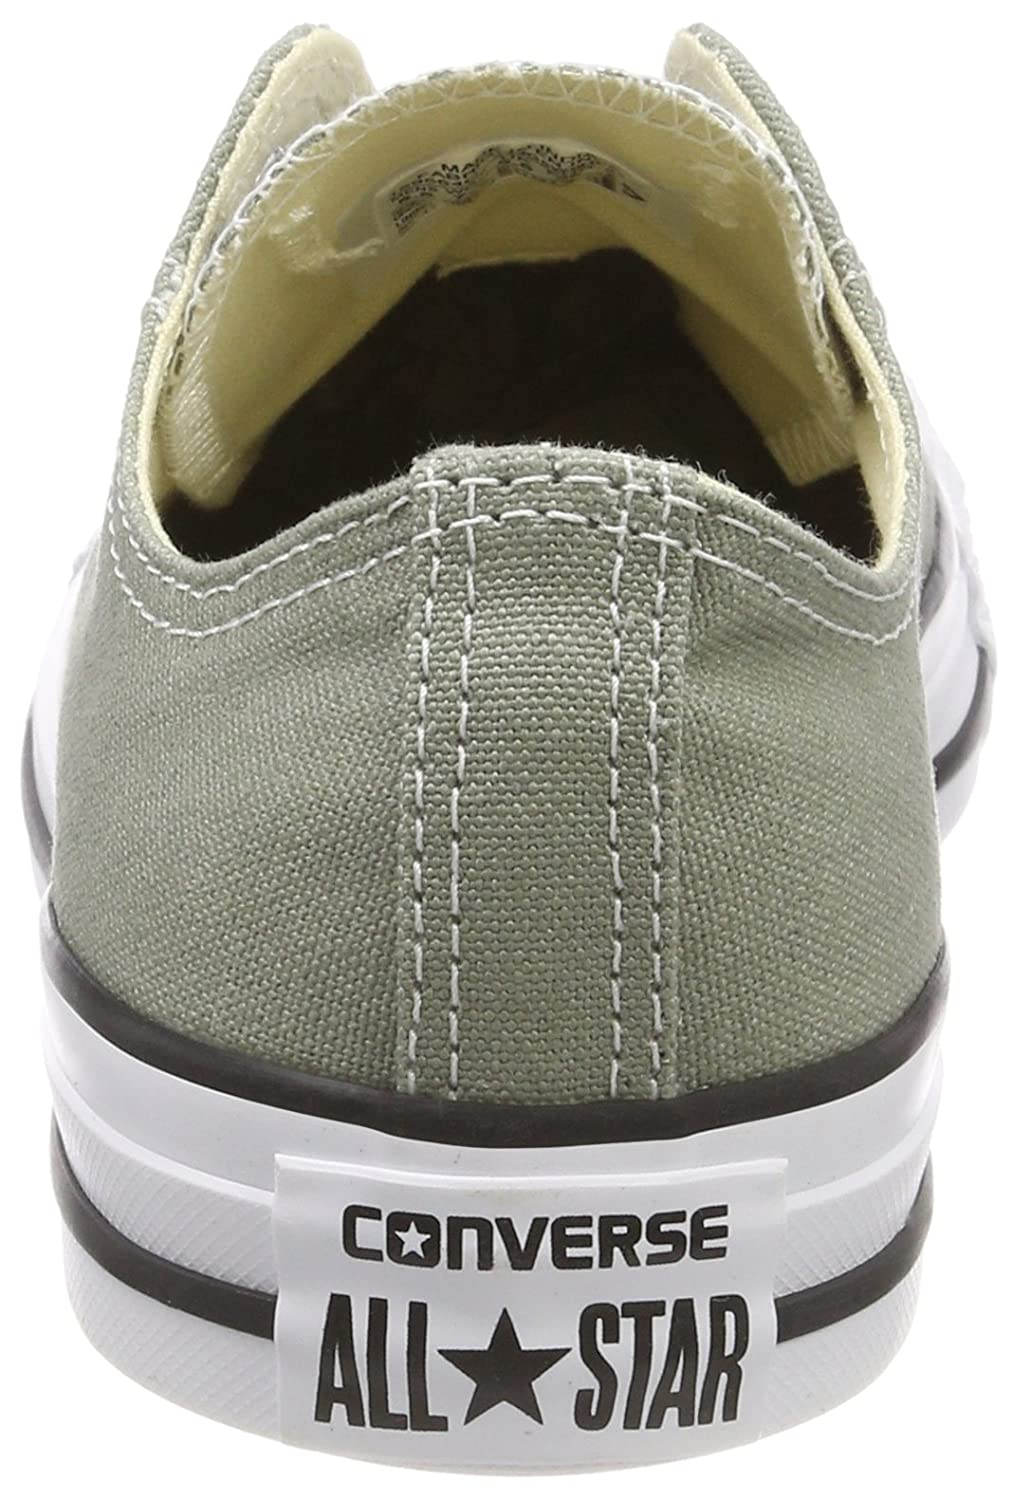 dbe7c9548494 Converse Adults  CTAS Ox Dark Stucco Trainers  Amazon.co.uk  Shoes   Bags